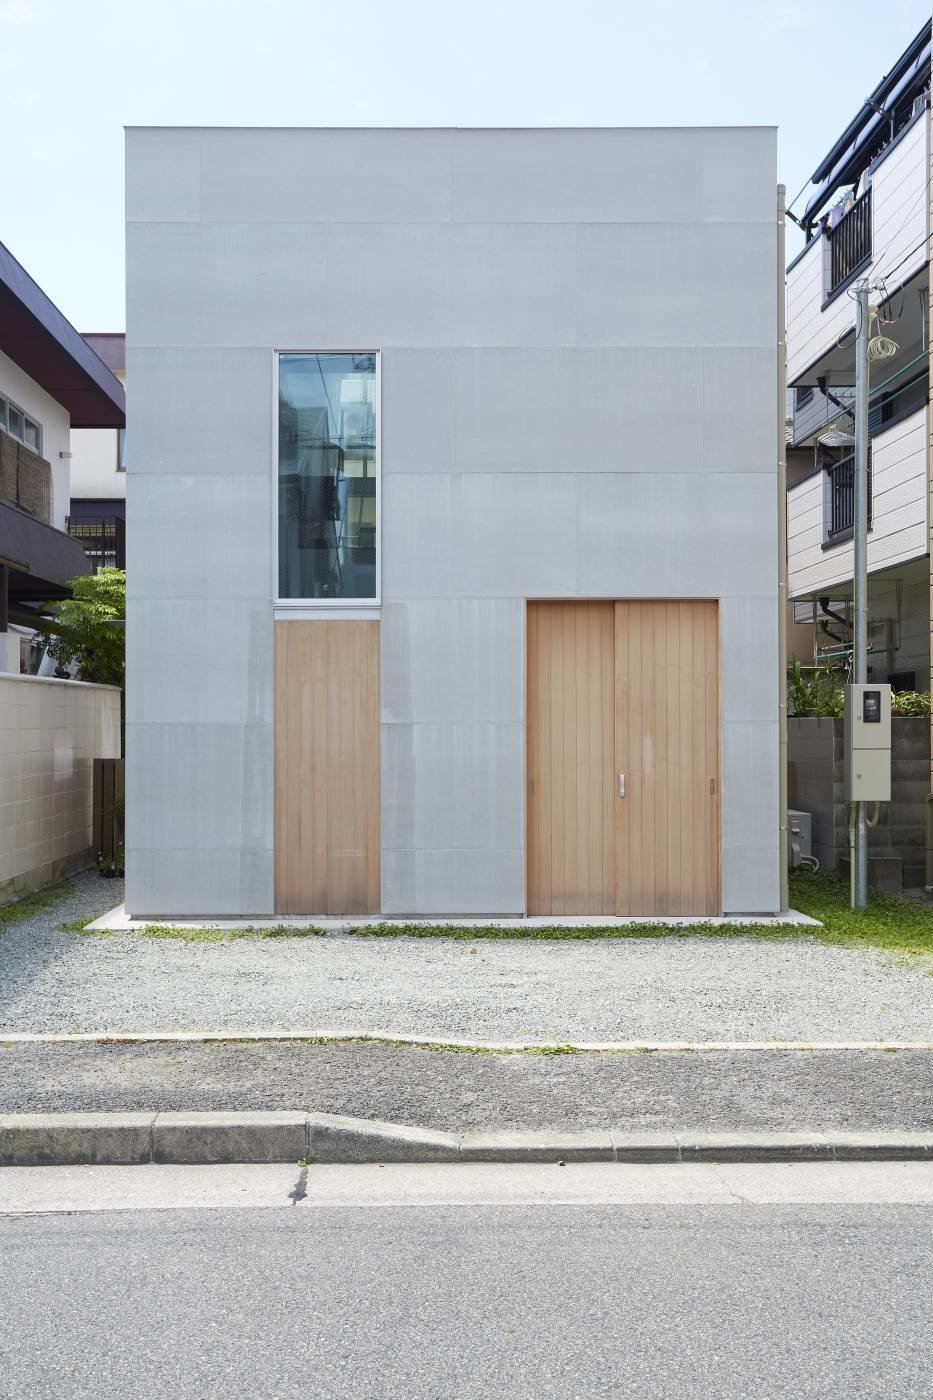 Unabashedly Strange Houses in Japan by Luke Hopping from Residence and Playground by Sota Matsuura Architects